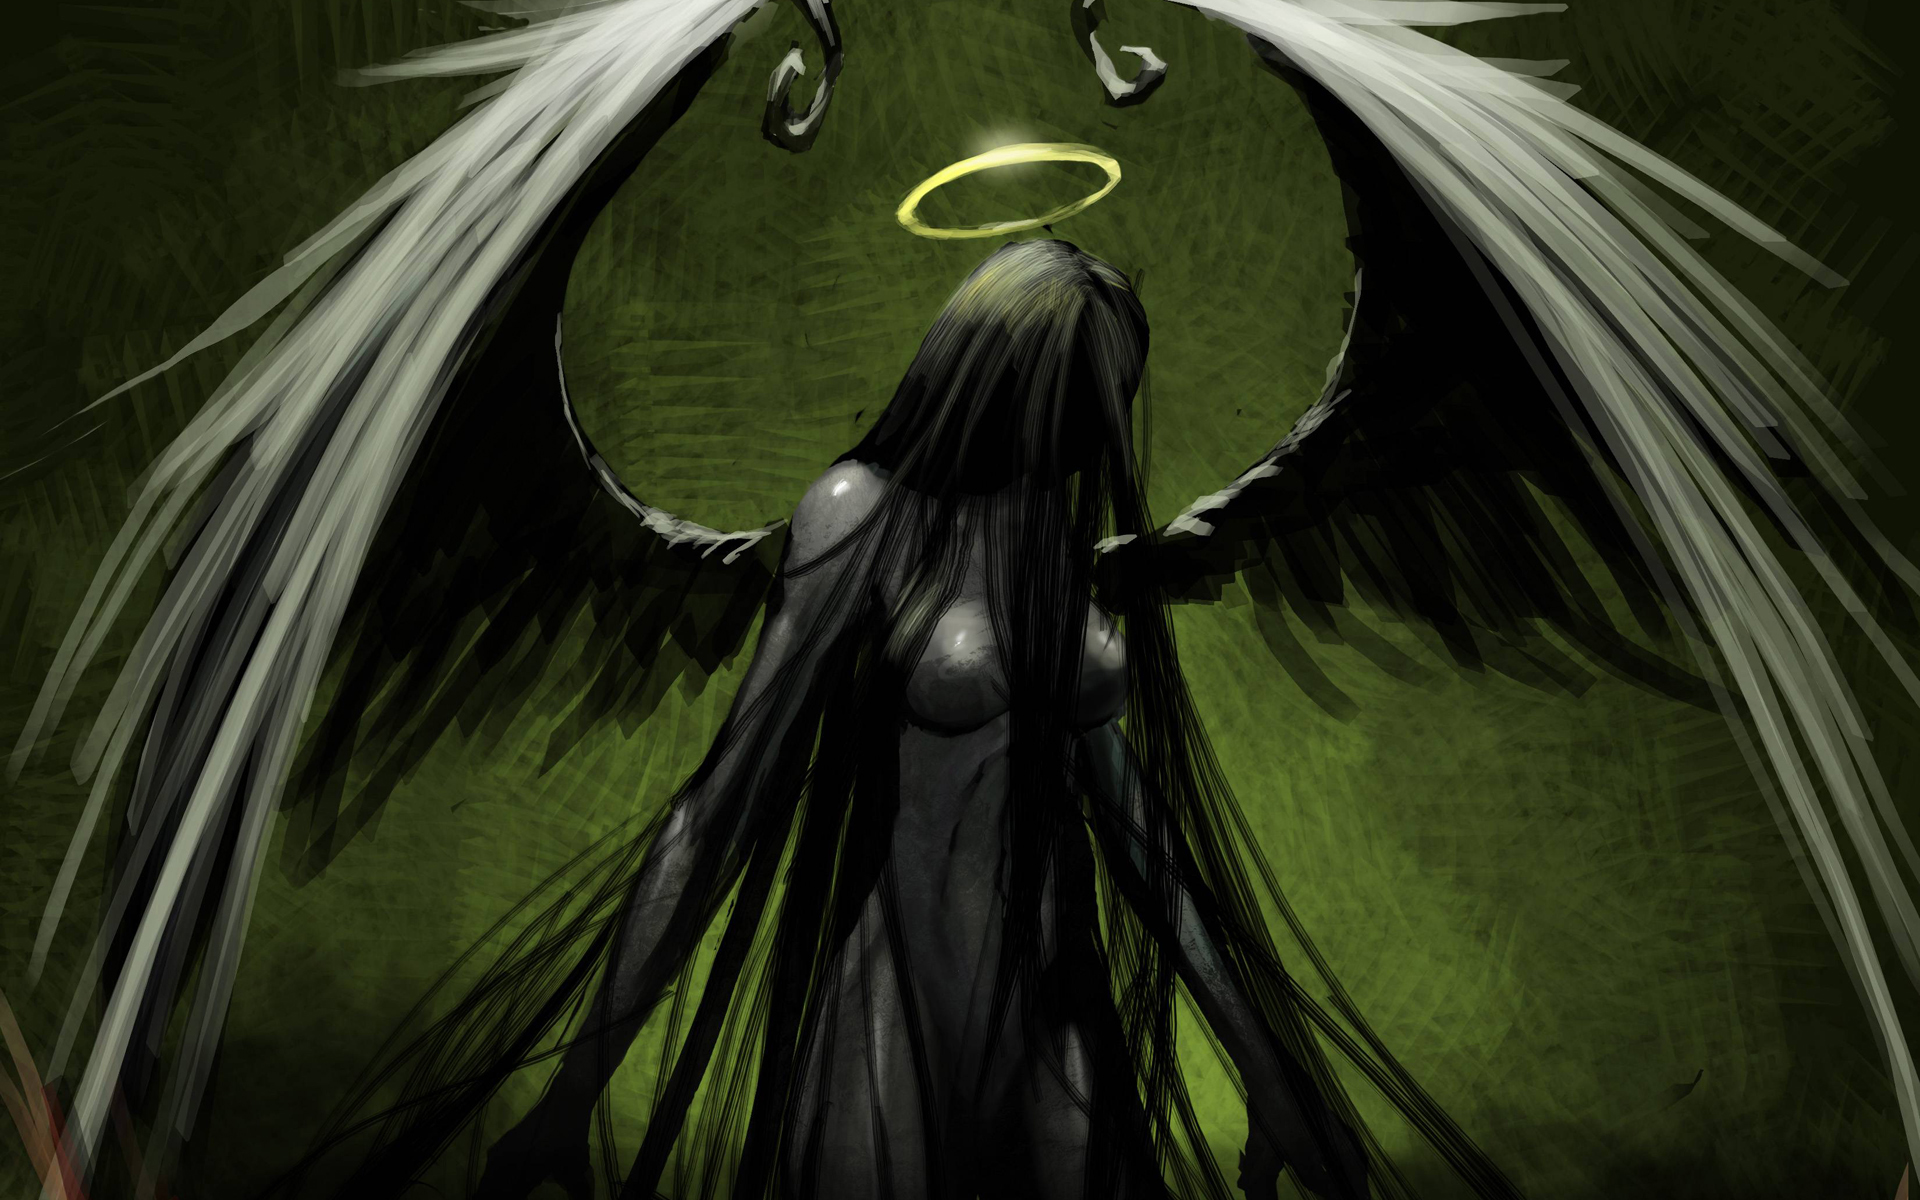 Drawn raven angel Wings wallpaper Wings Demon Reaper